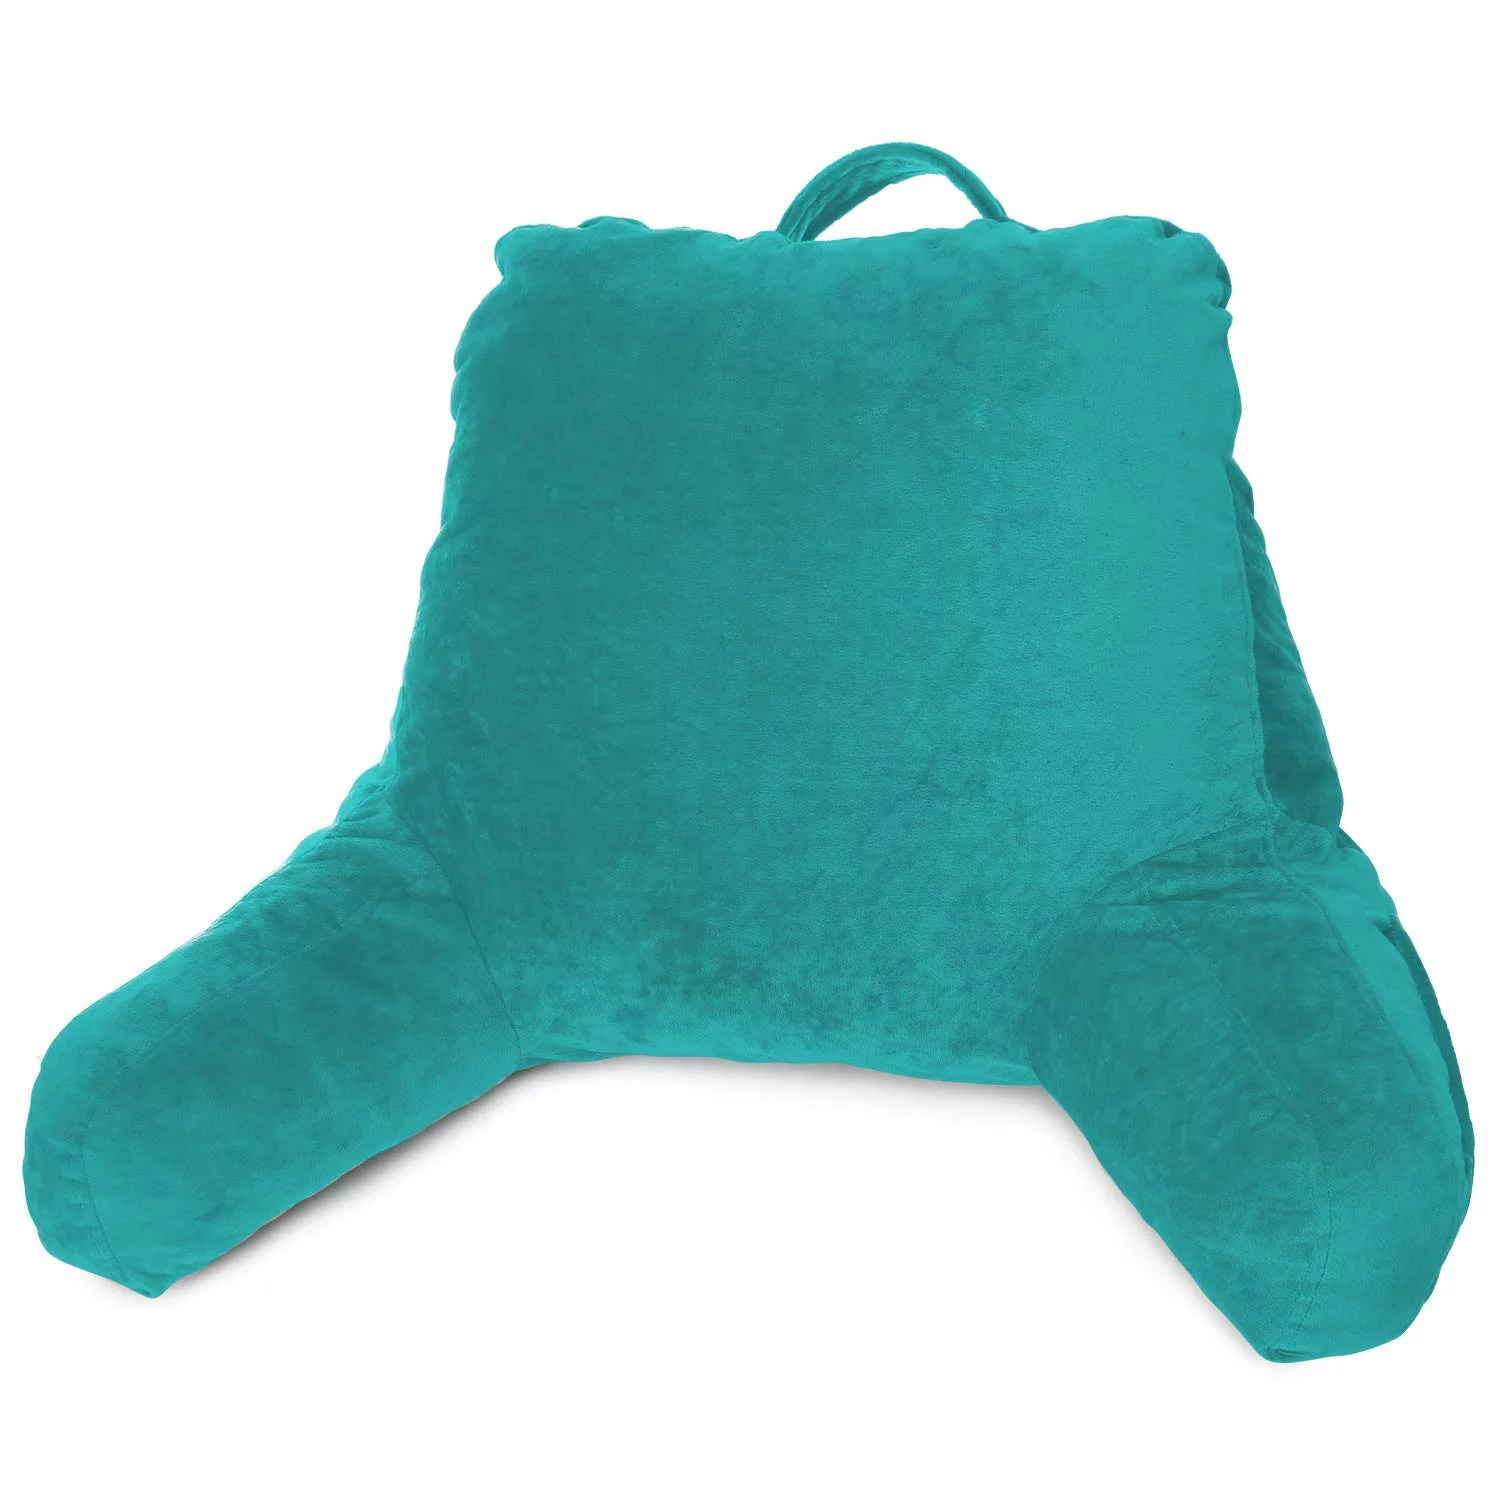 clara clark bed rest reading pillow with arms and pockets for kids teens adults premium shredded memory foam tv pillow medium teal